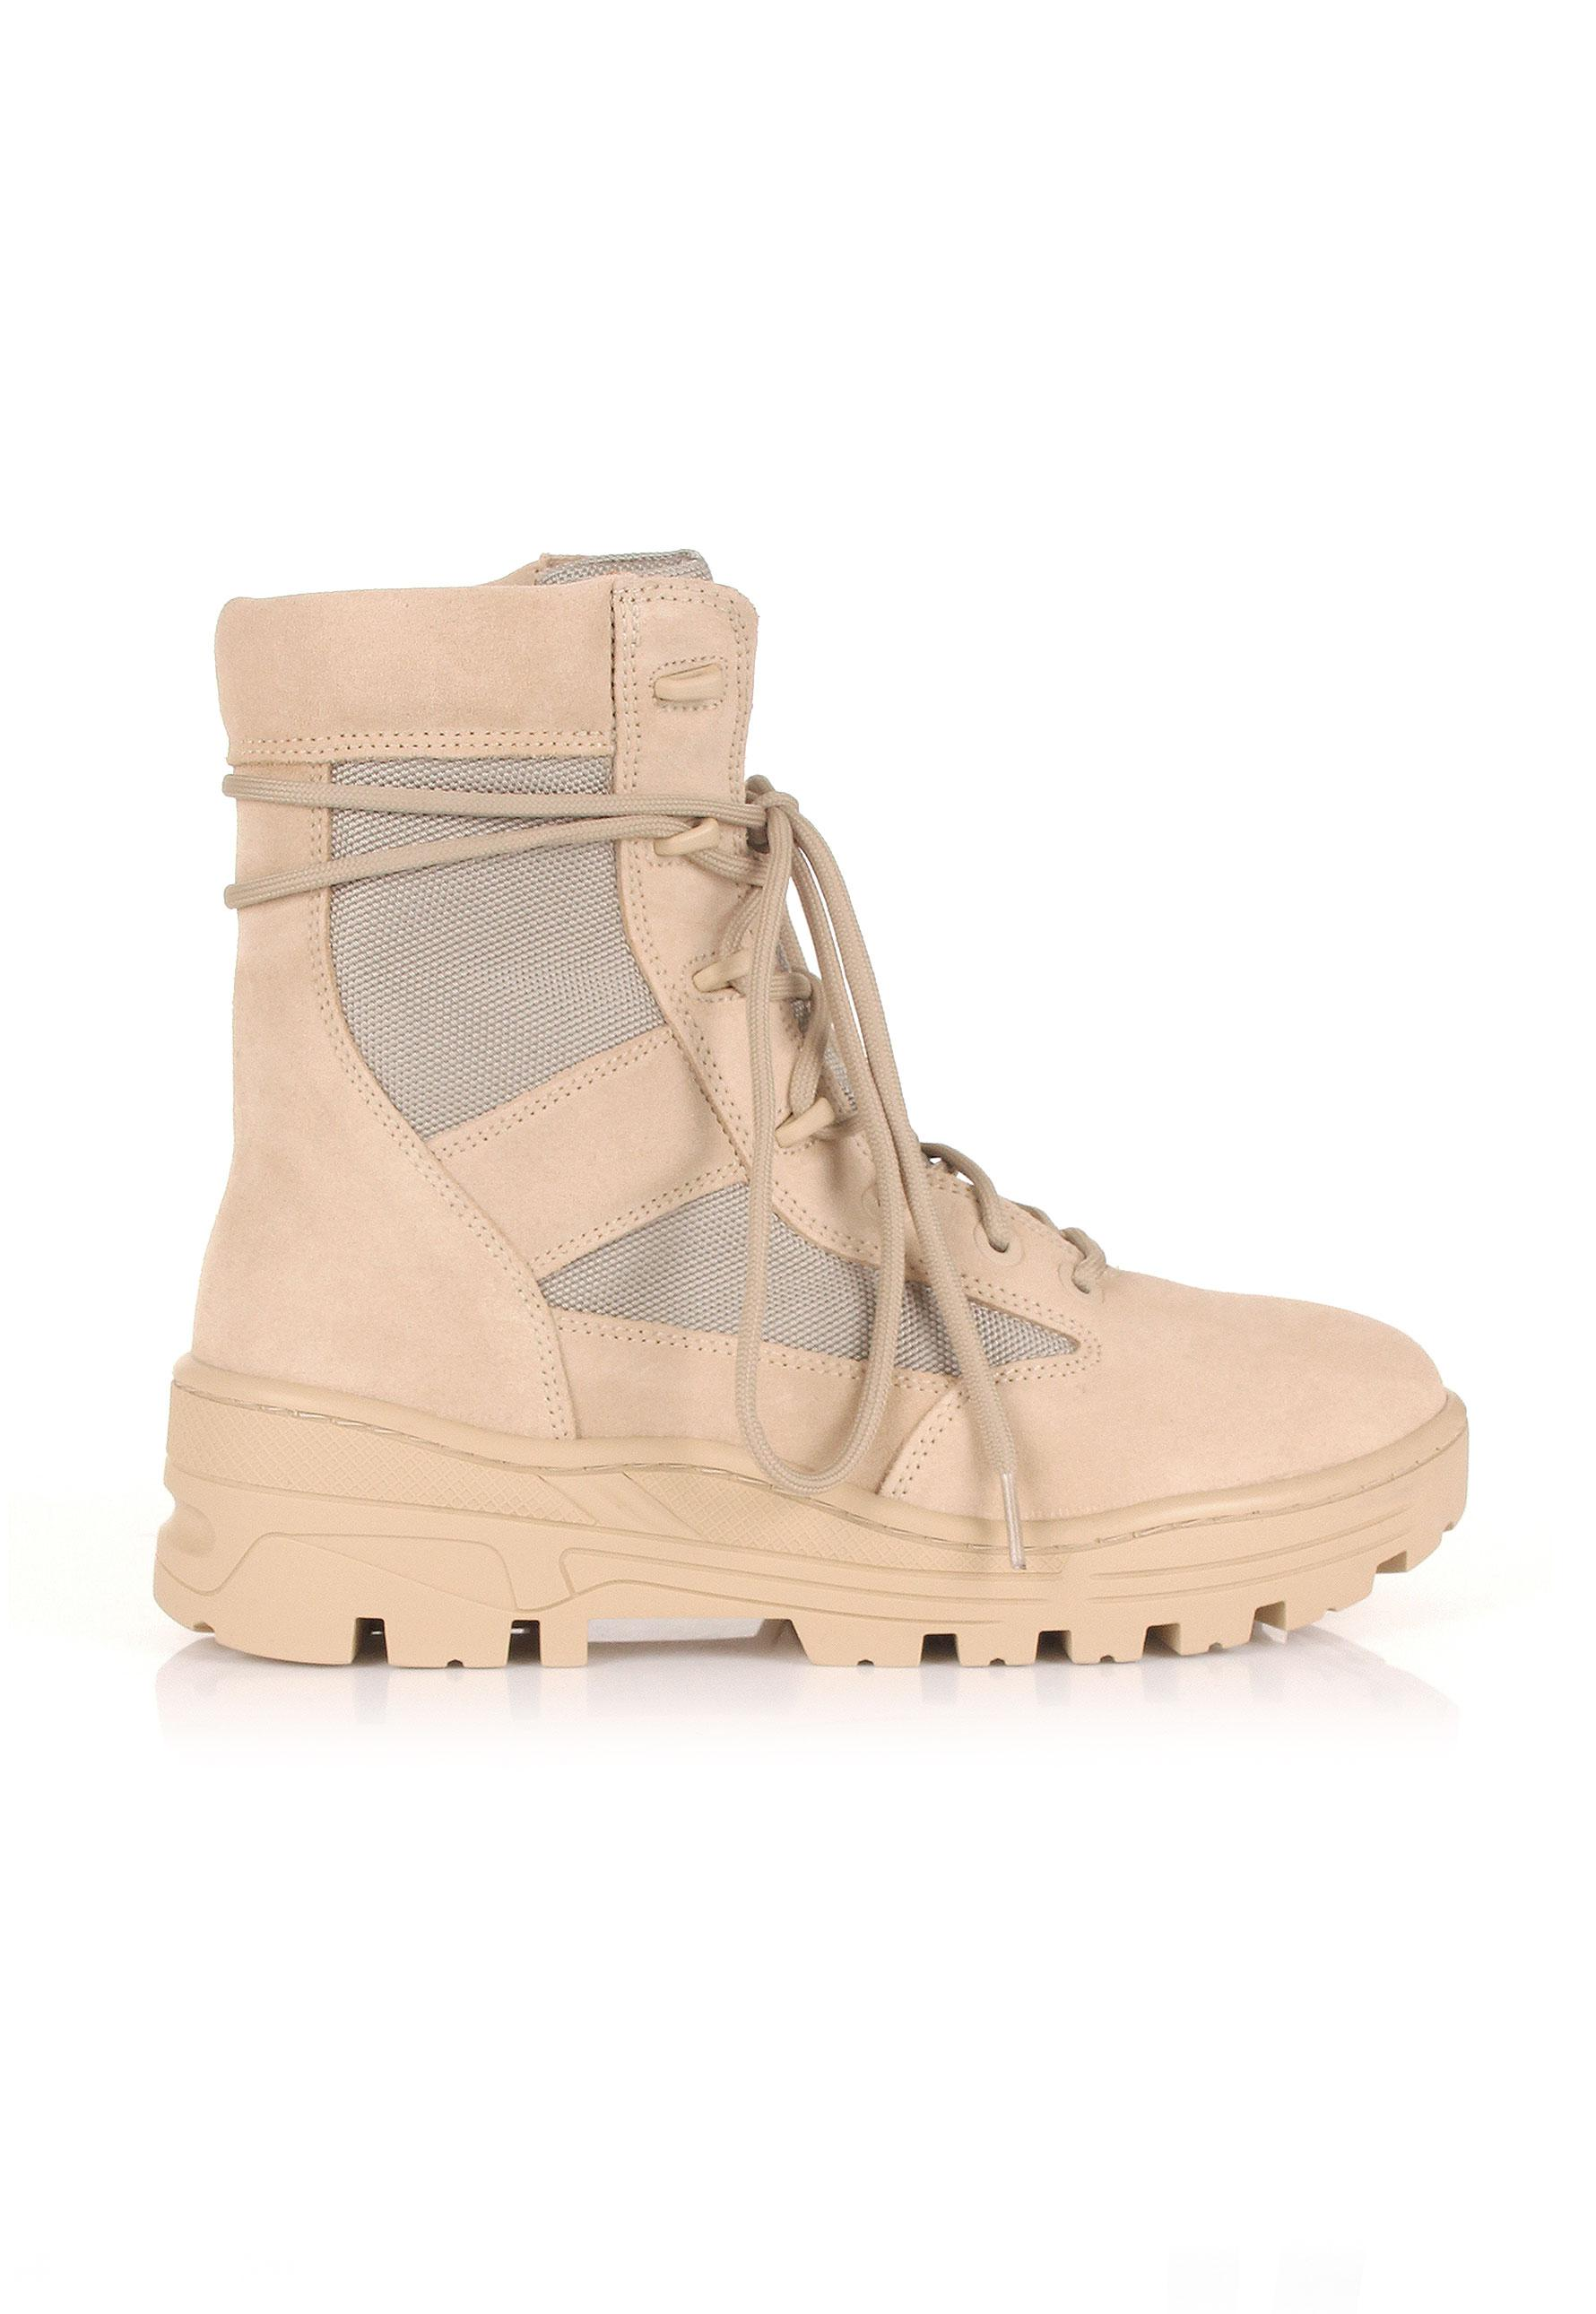 0dd876bba Lyst - Yeezy Season 4 Combat Boots Sand in Natural